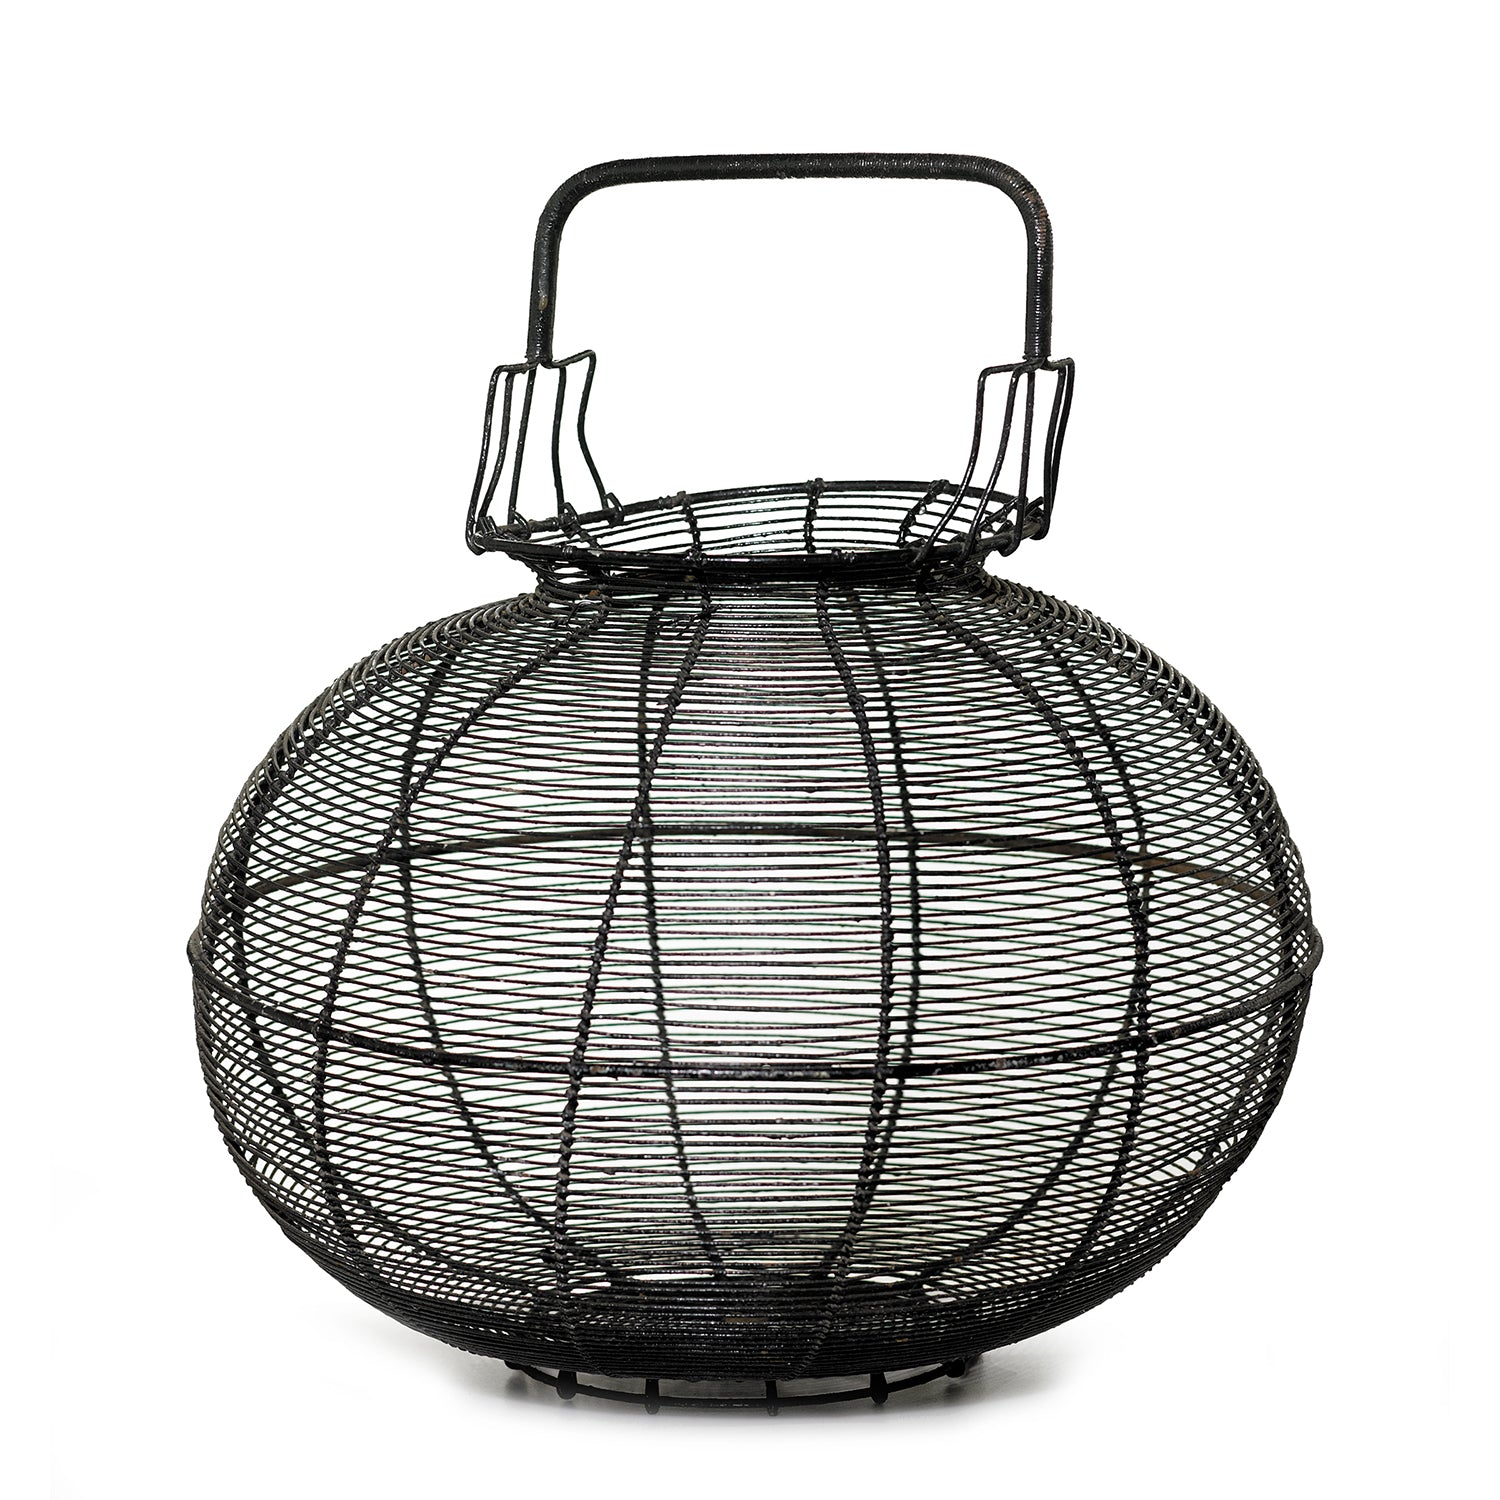 An impressive black painted metal provincial egg collecting basket, French Circa 1900